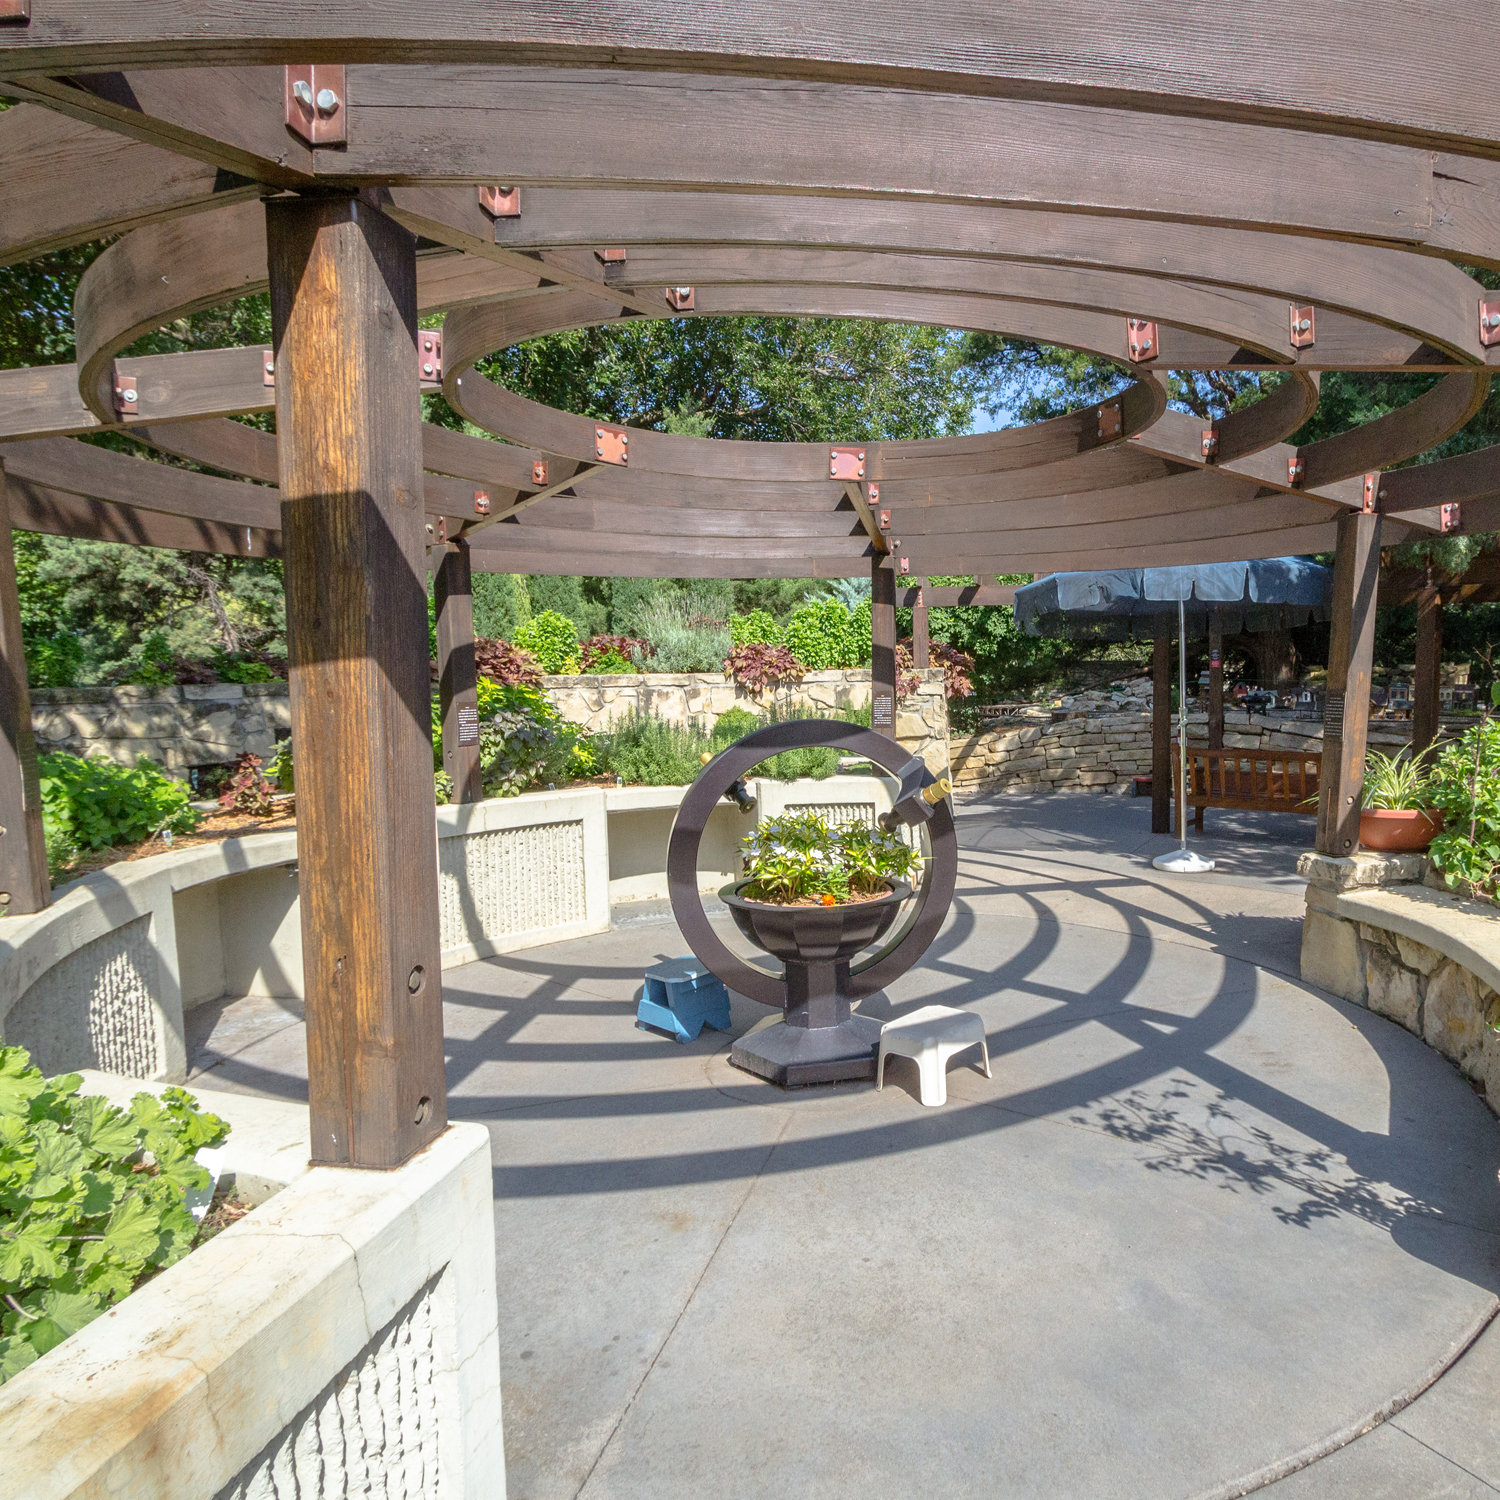 Best Place To Visit If You Are In Kansas-Botanica: Wichita Gardens